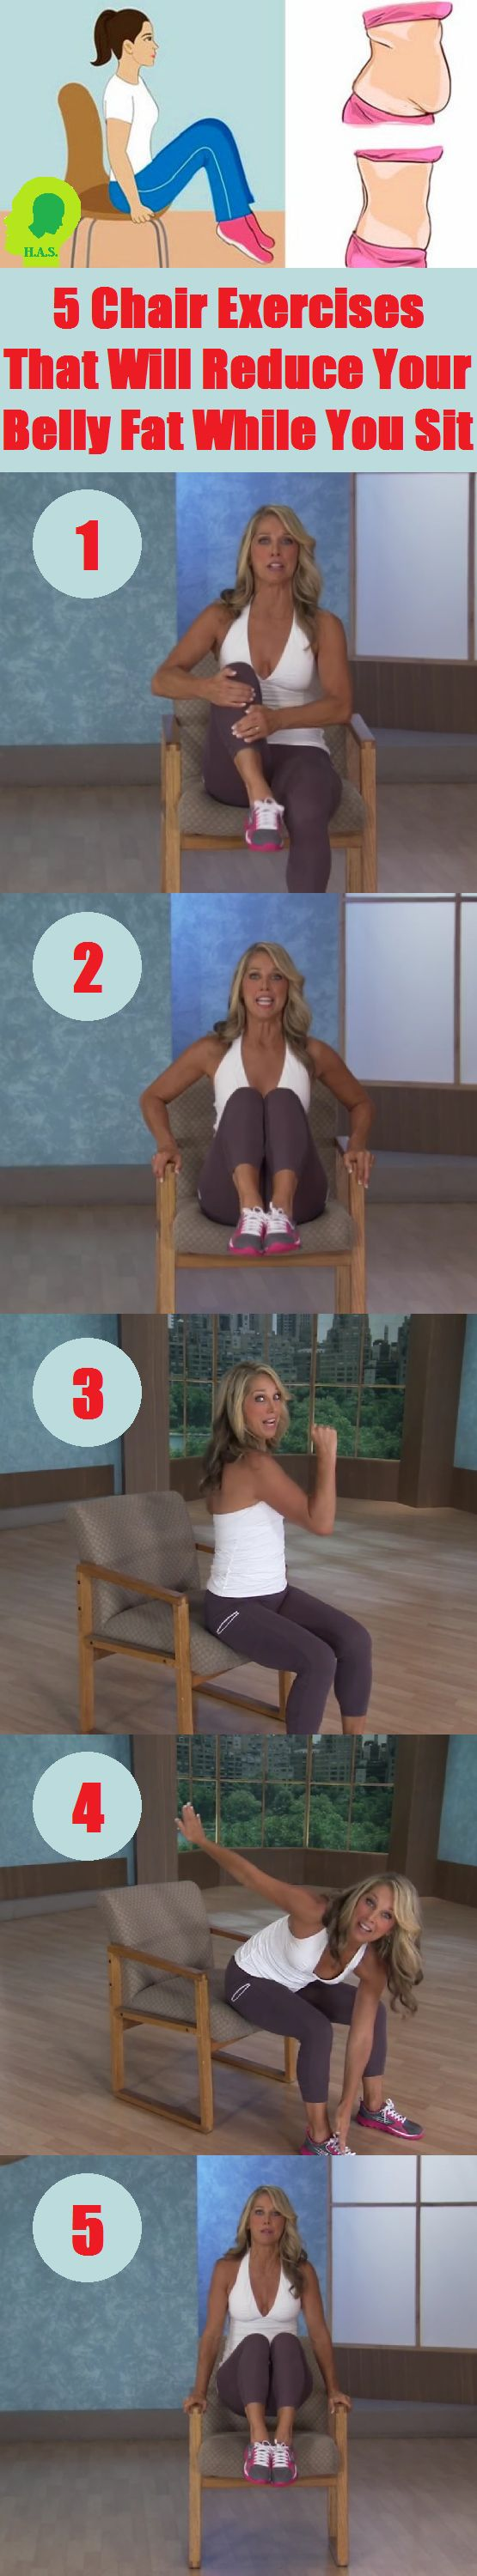 If you are one of those people who spend most of their day sitting at work, you should definitely try the following chair exercises, as they can help you get in shape while sitting!